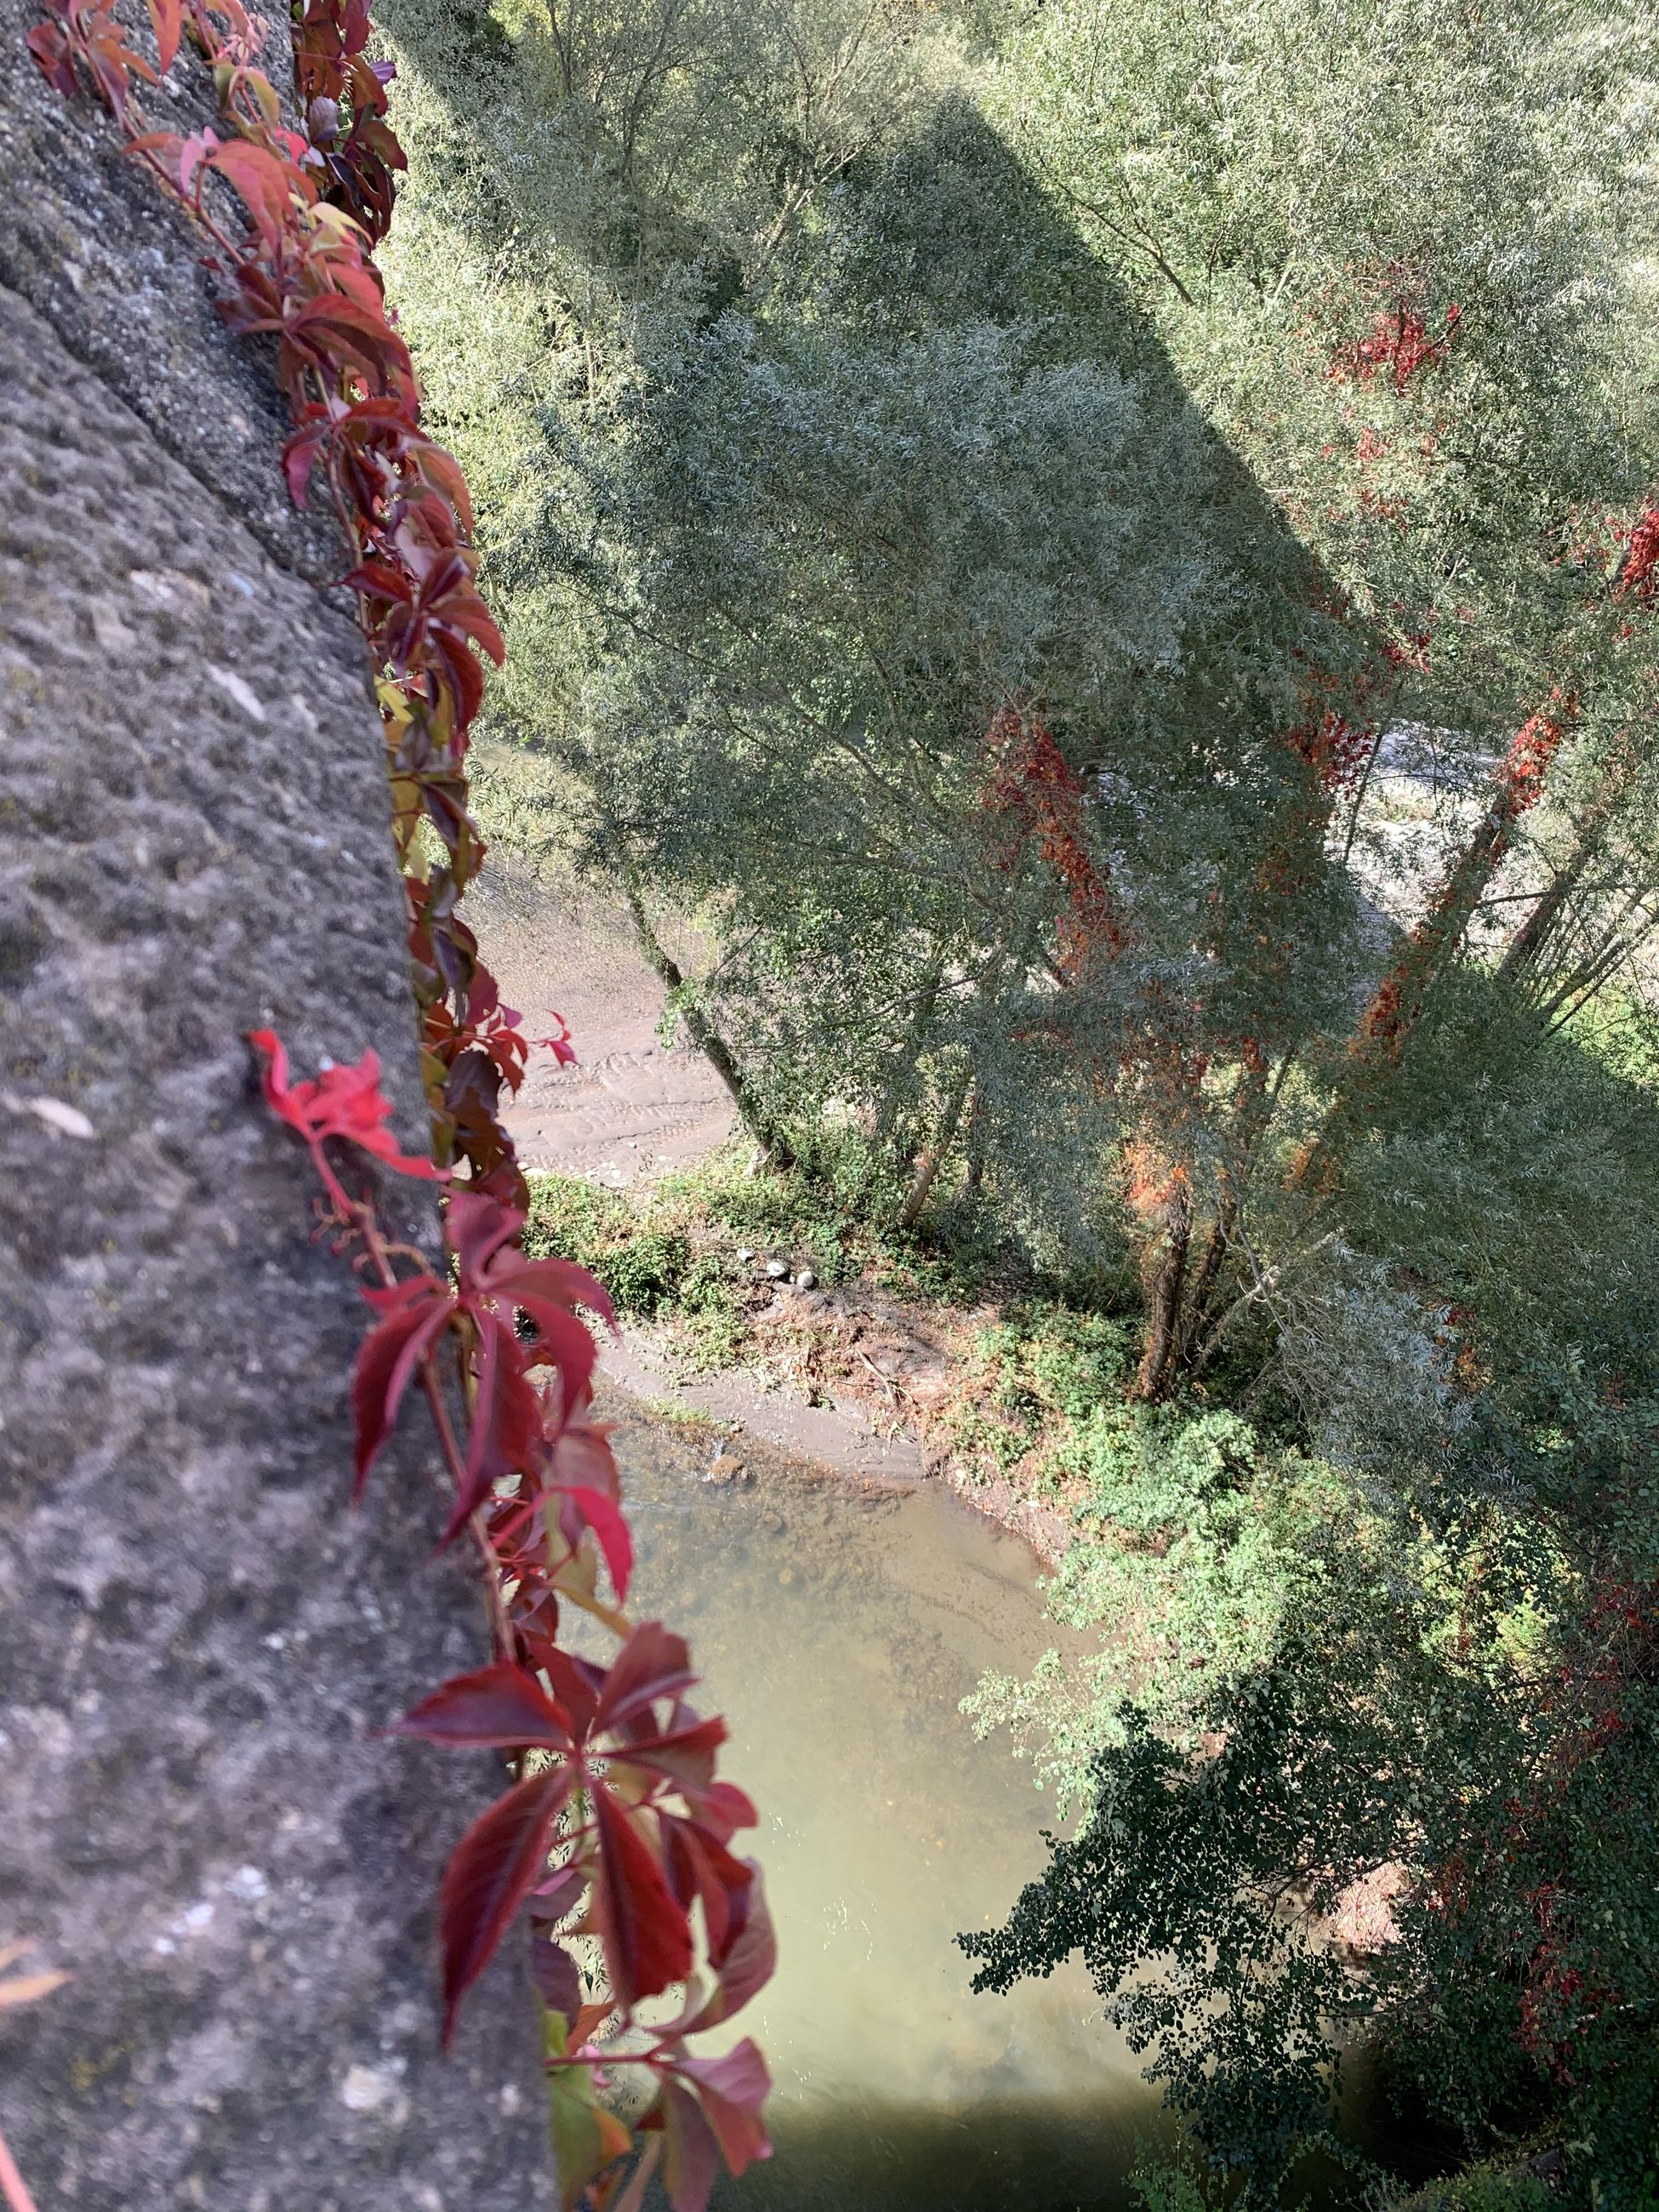 HIGH ANGLE VIEW OF RED FLOWERING PLANTS ON WALL